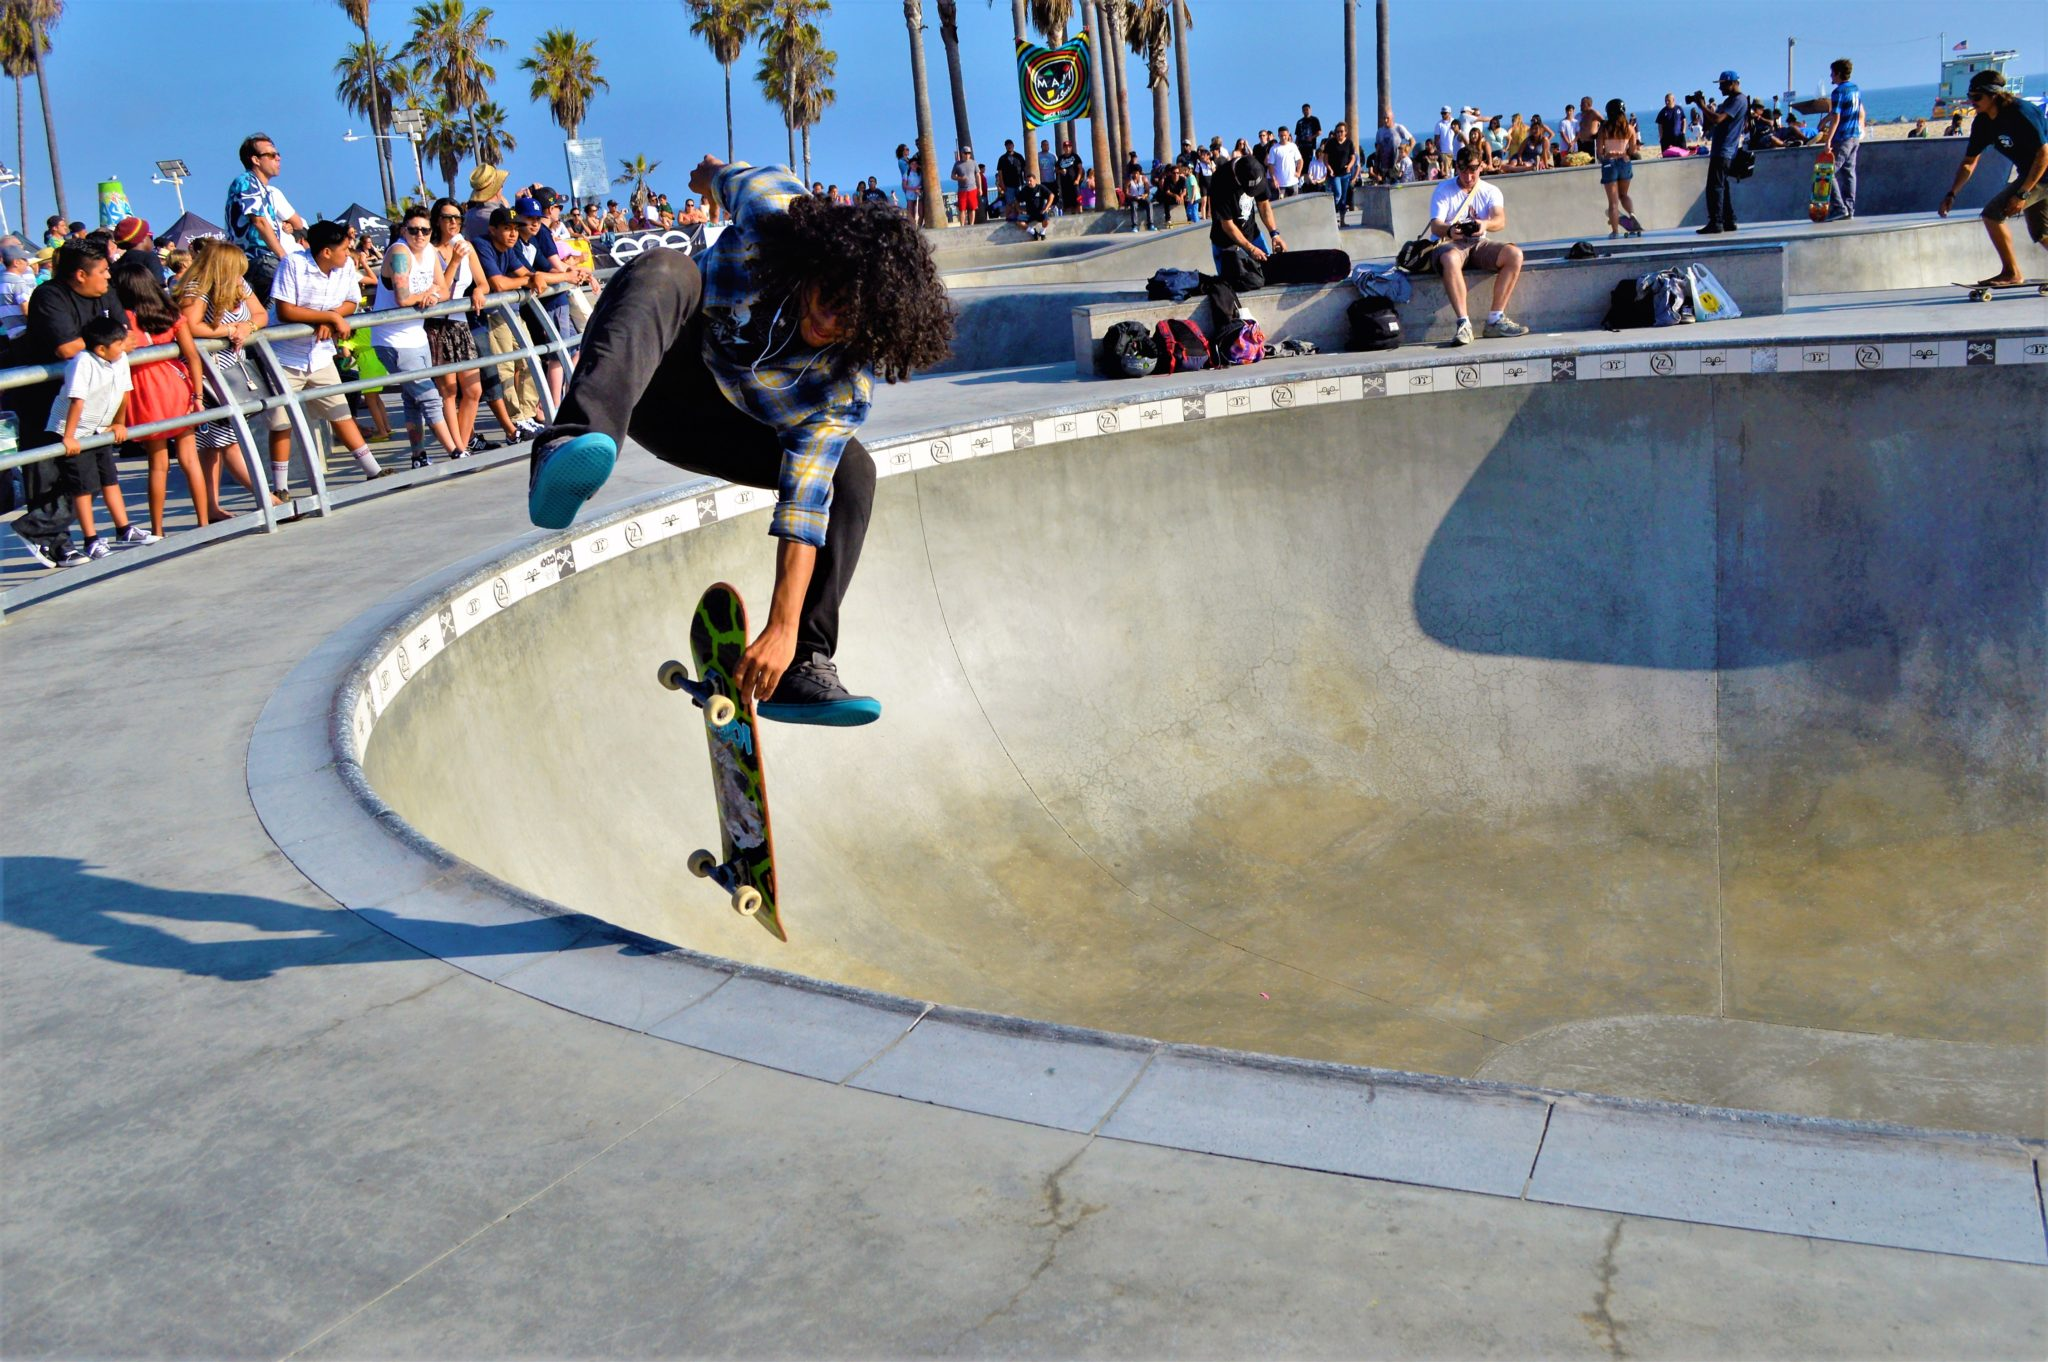 Venice Skate Park, things to do in Los Angeles